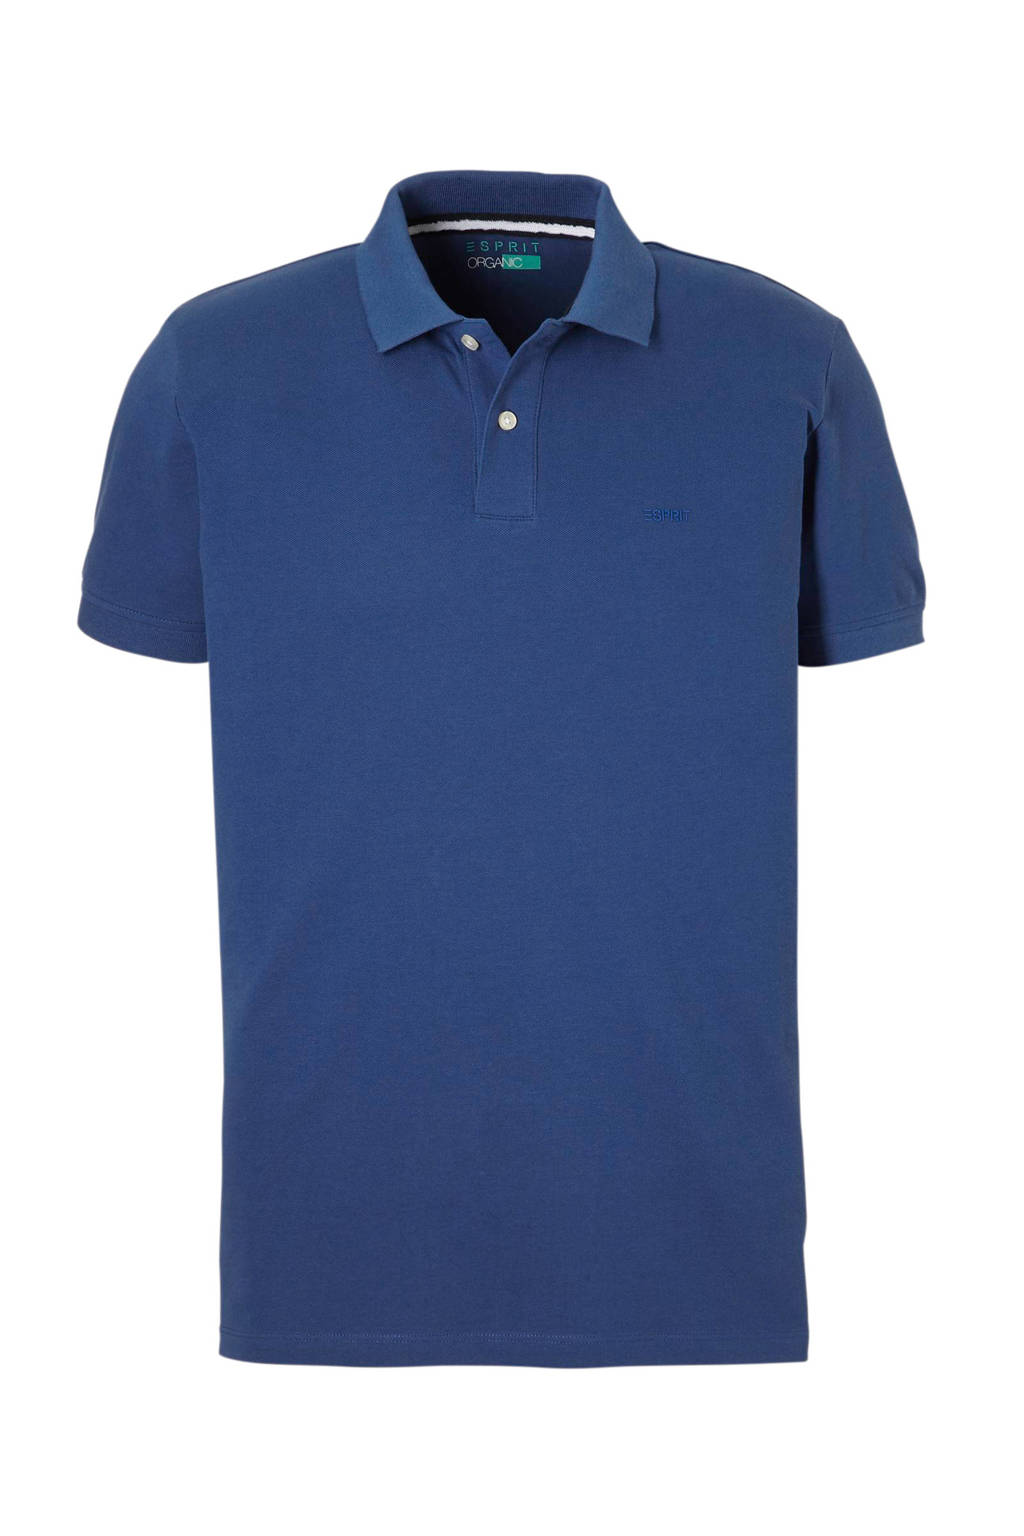 ESPRIT Men Casual polo, Blauw